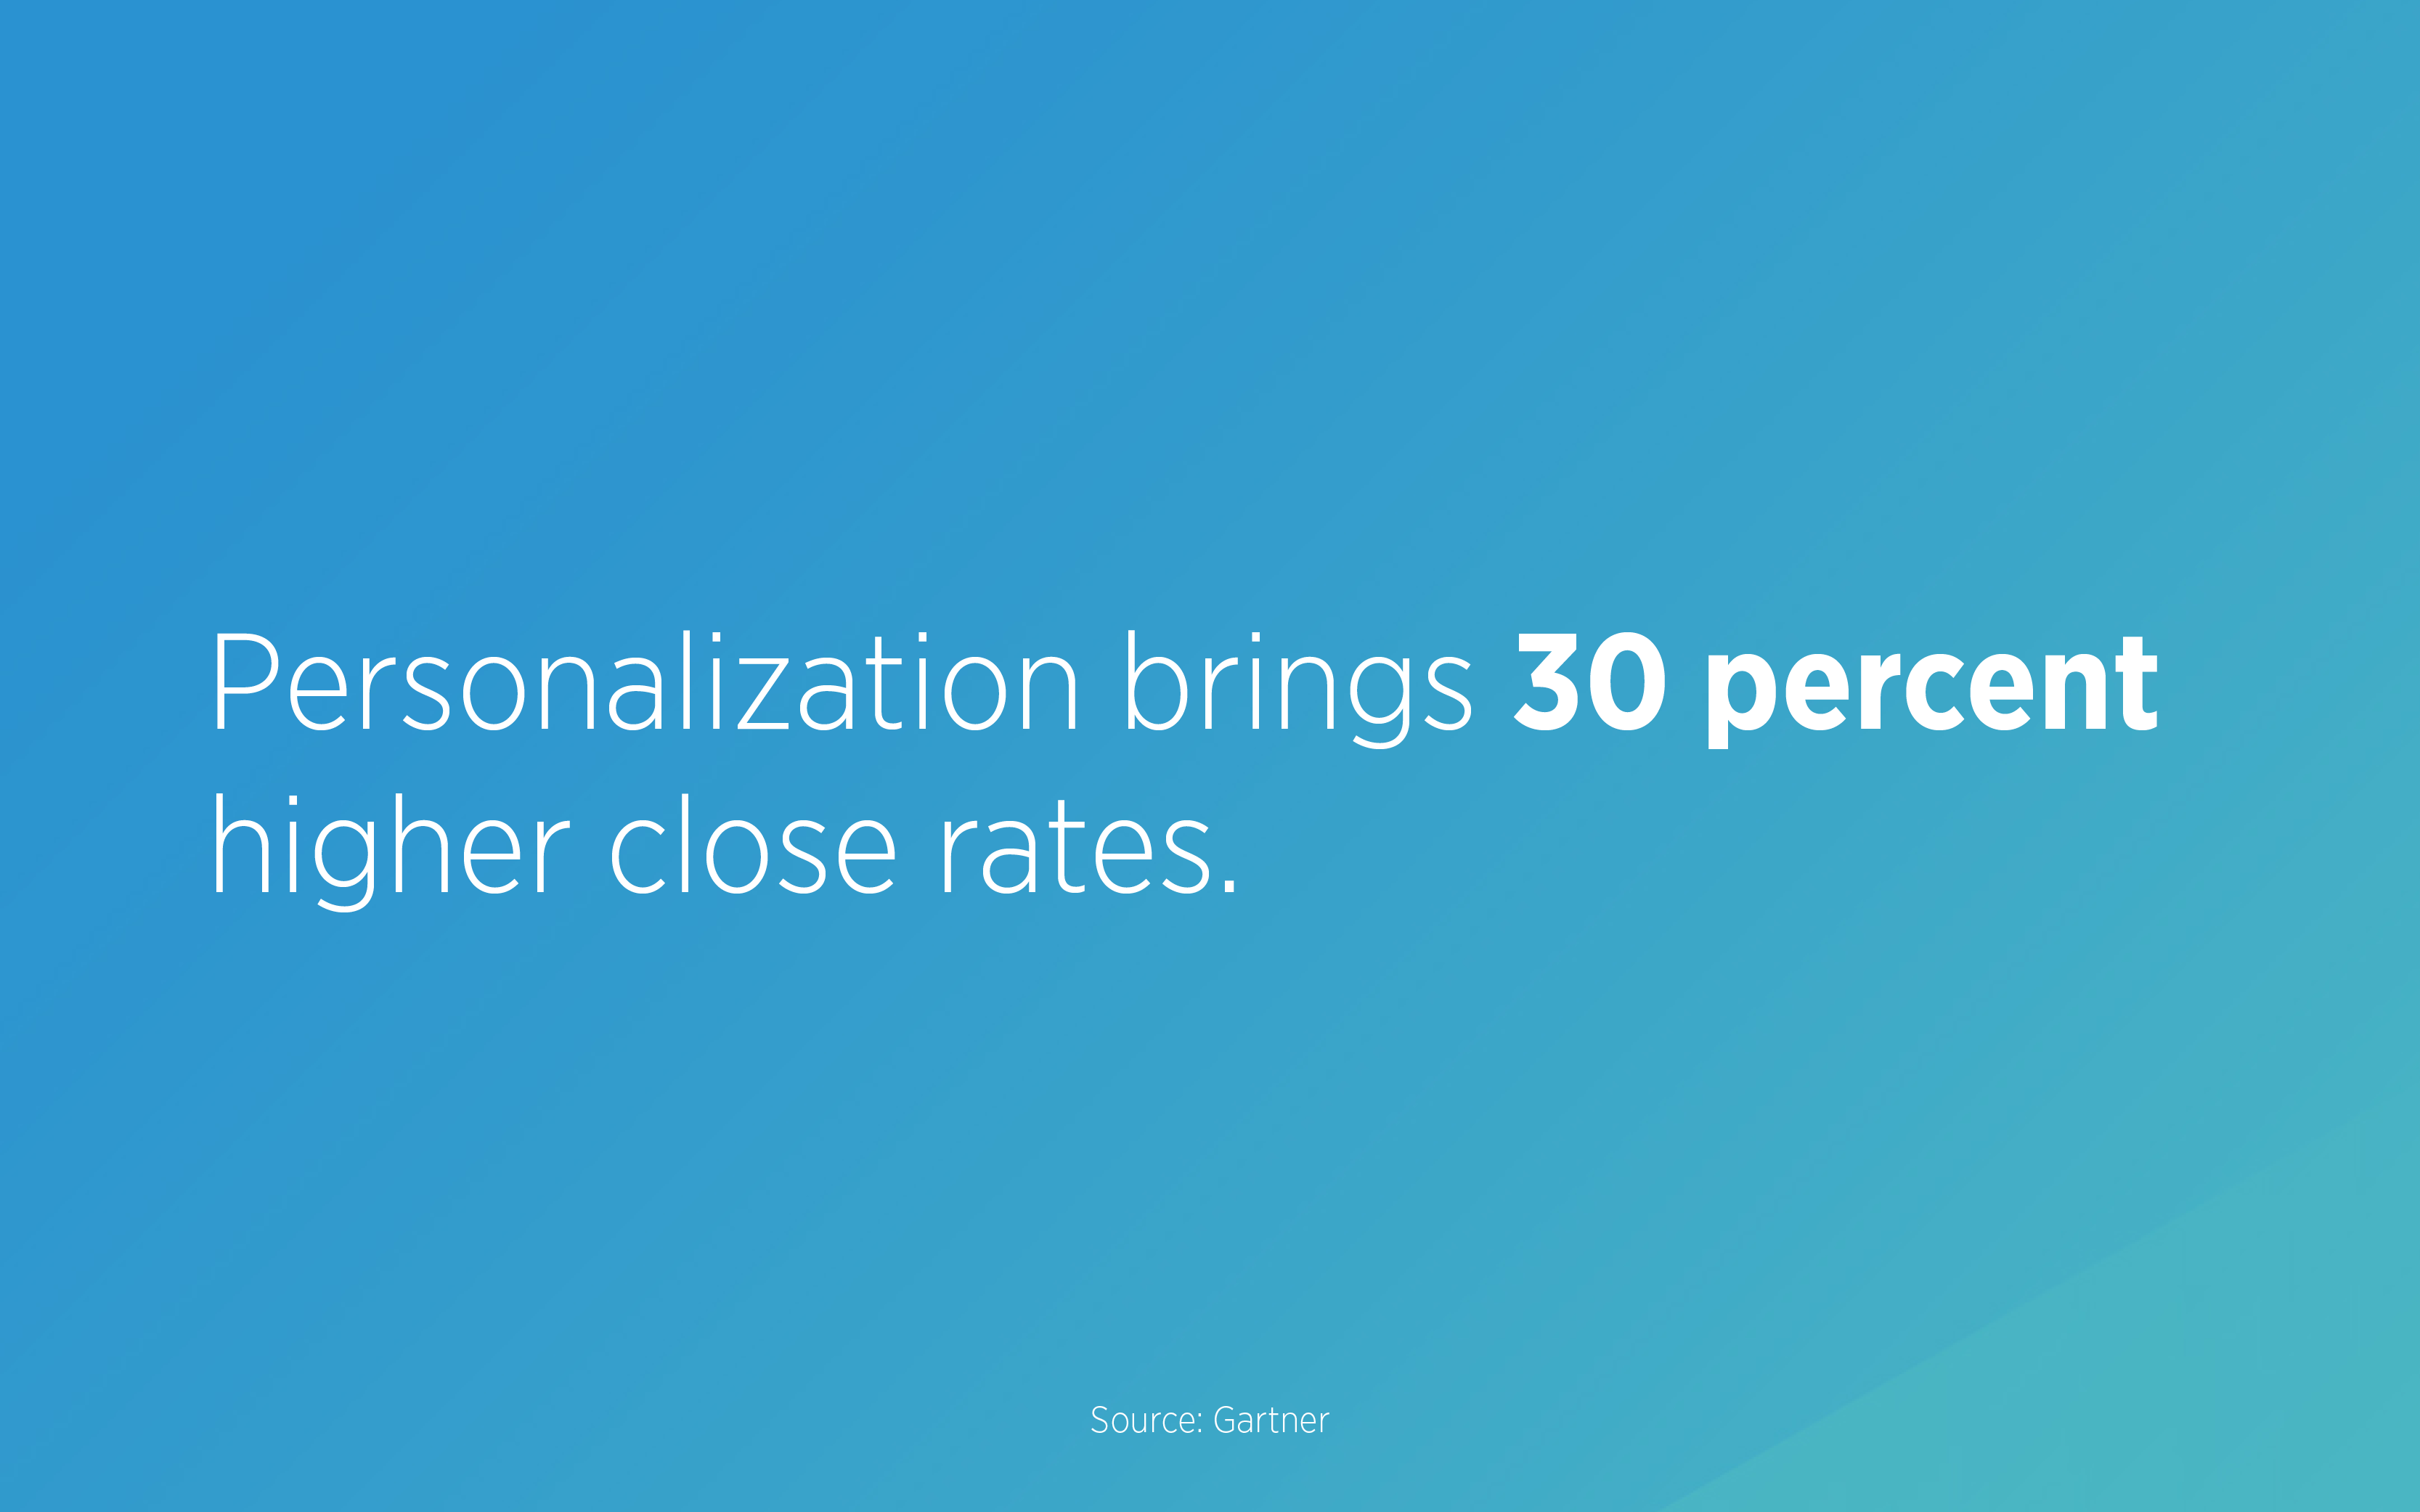 Personalization brings 30 percent higher close rates. Personalizing messages has a real impact on revenue.